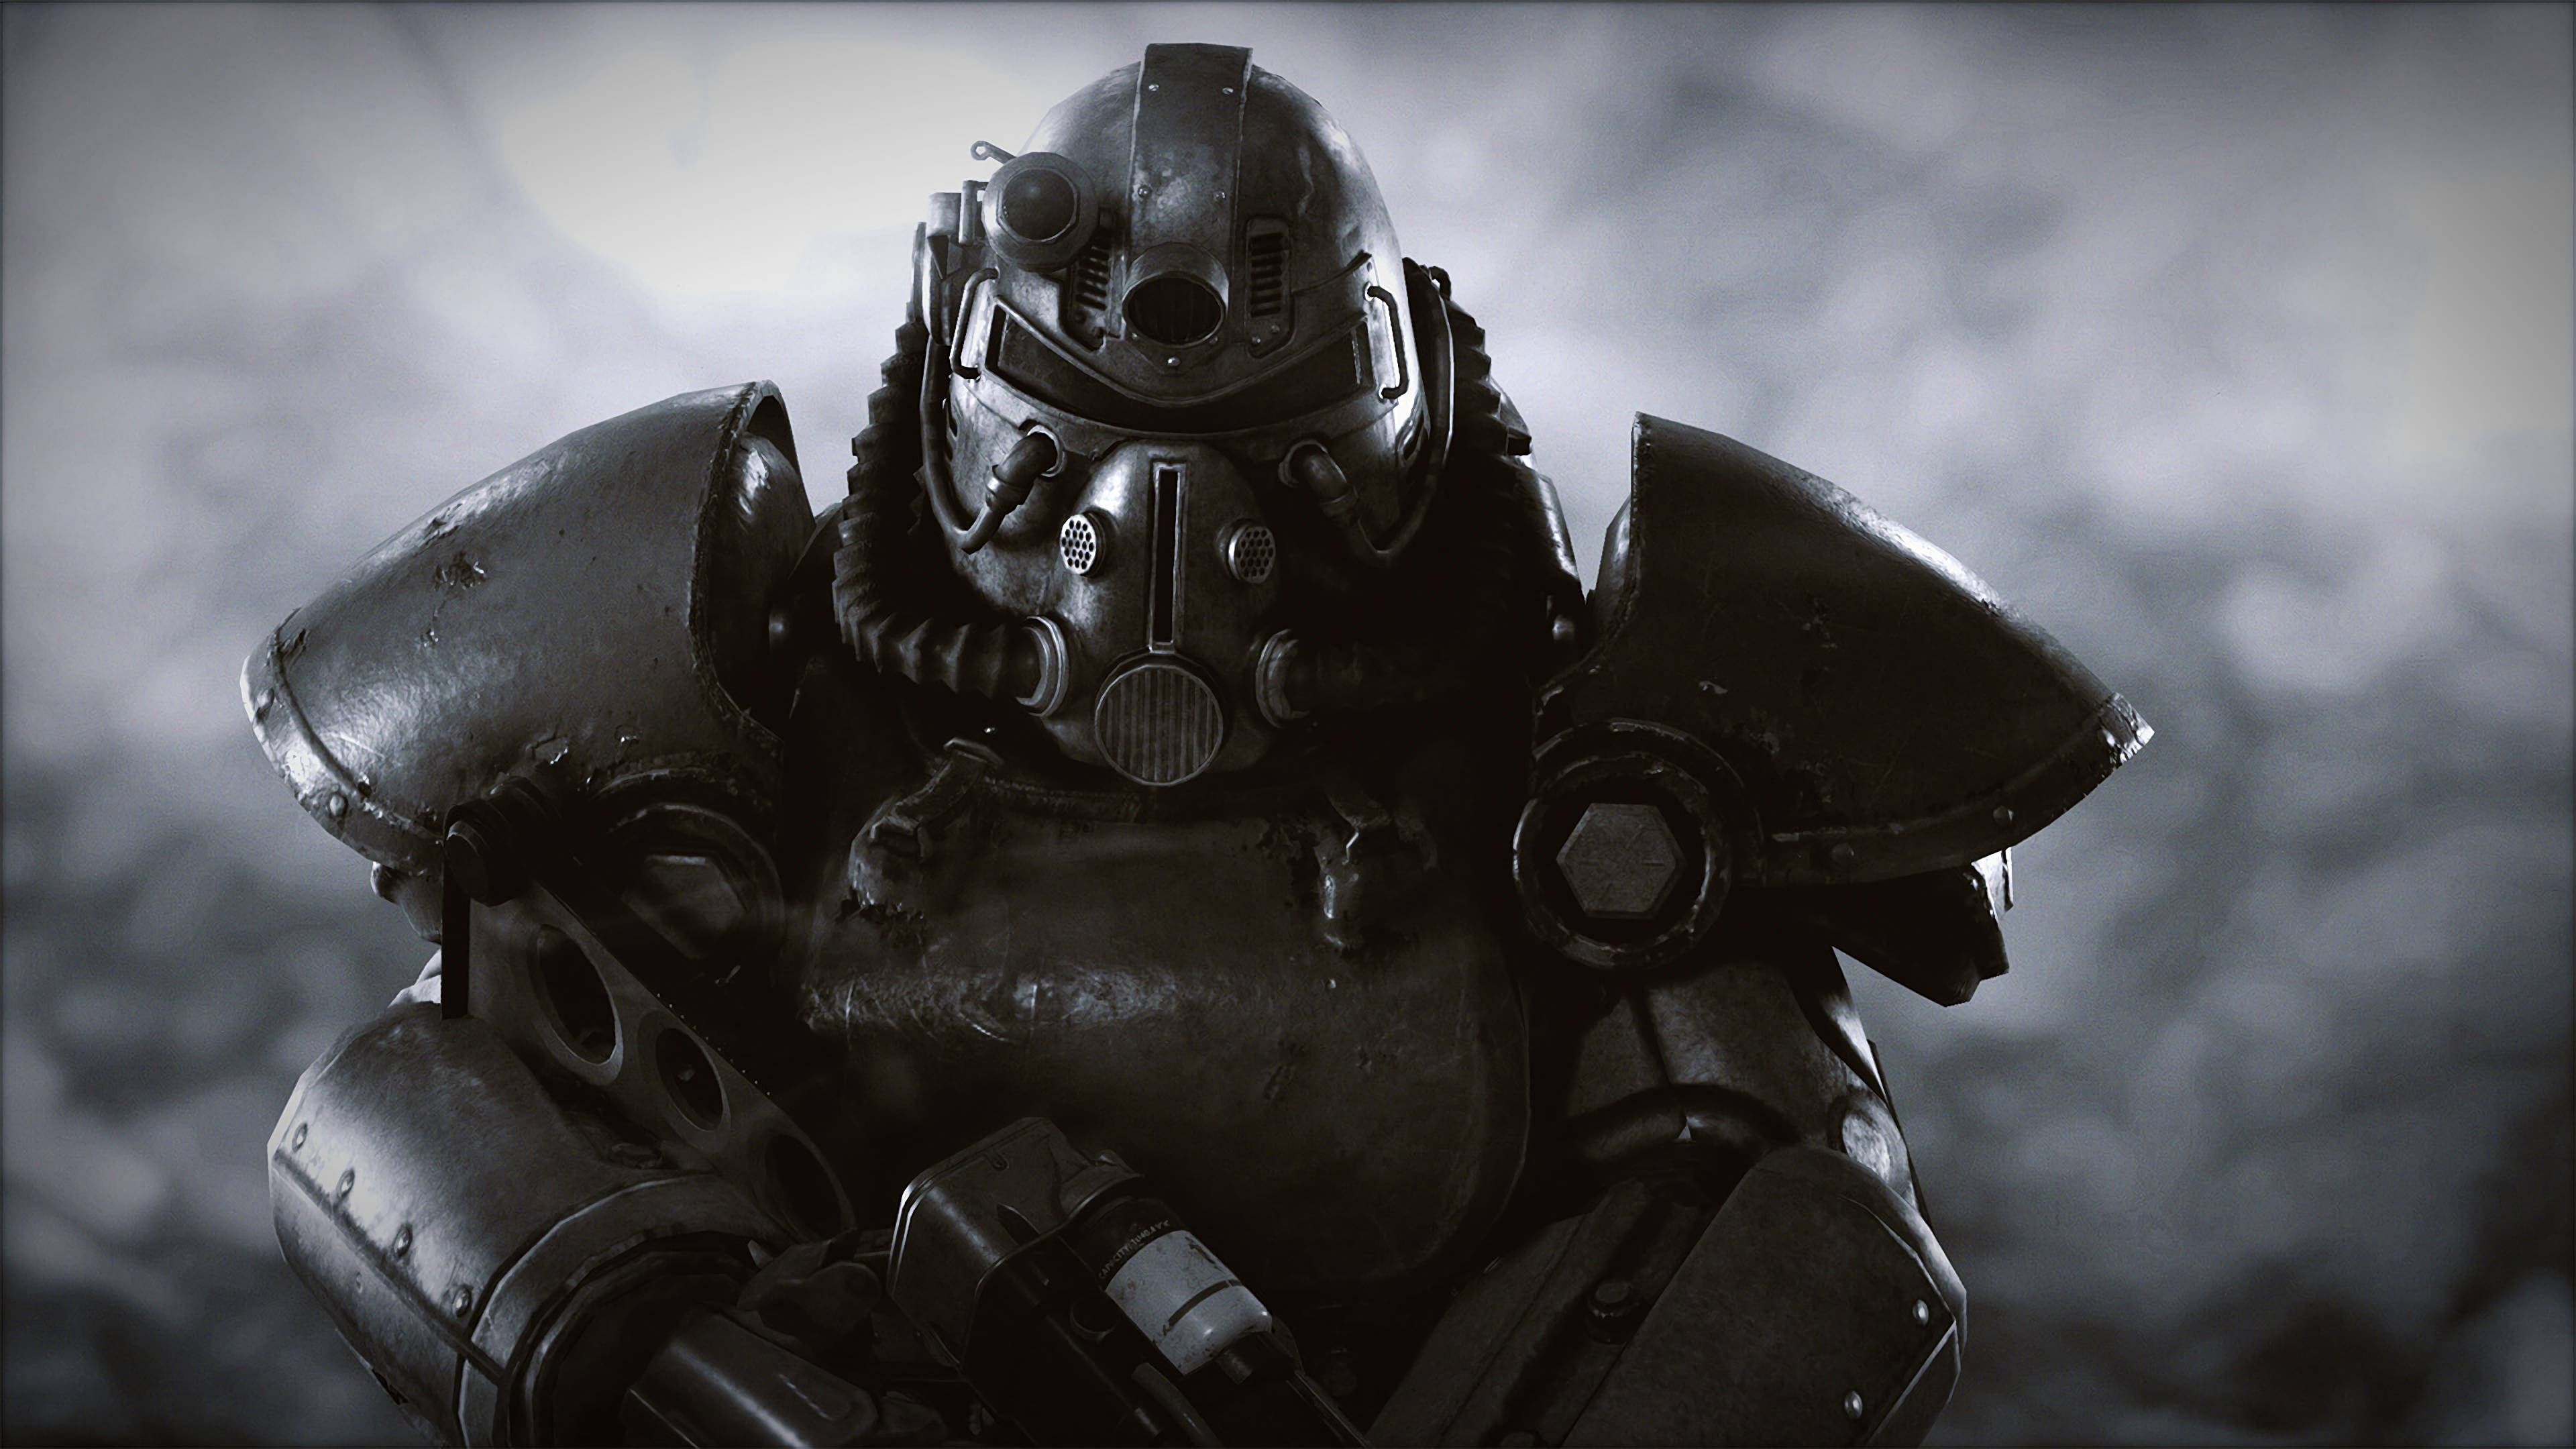 Power Armor Wallpapers Top Free Power Armor Backgrounds